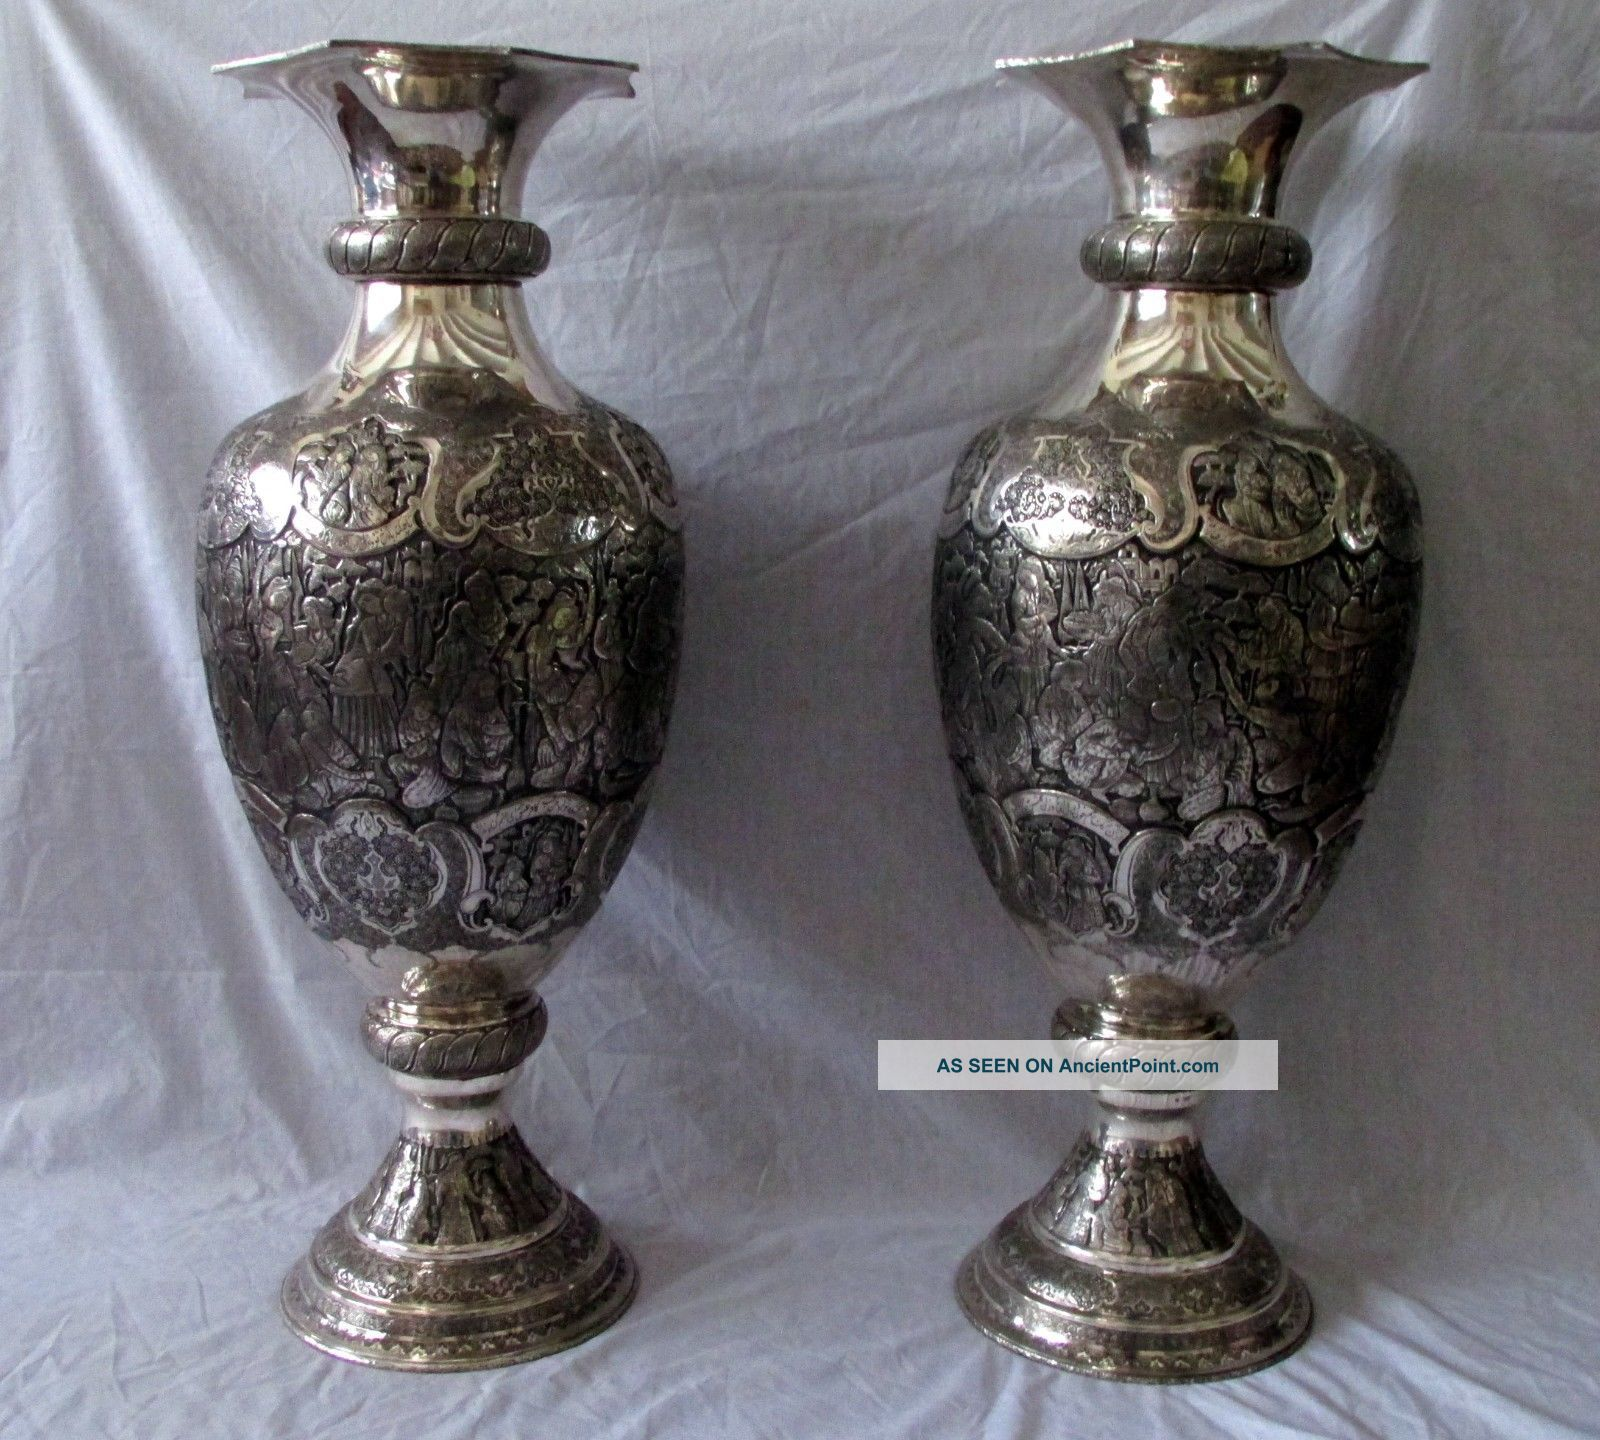 Museum Antique Islamic Persian Silver Vases Marked 84 Poetic Verses Middle East photo